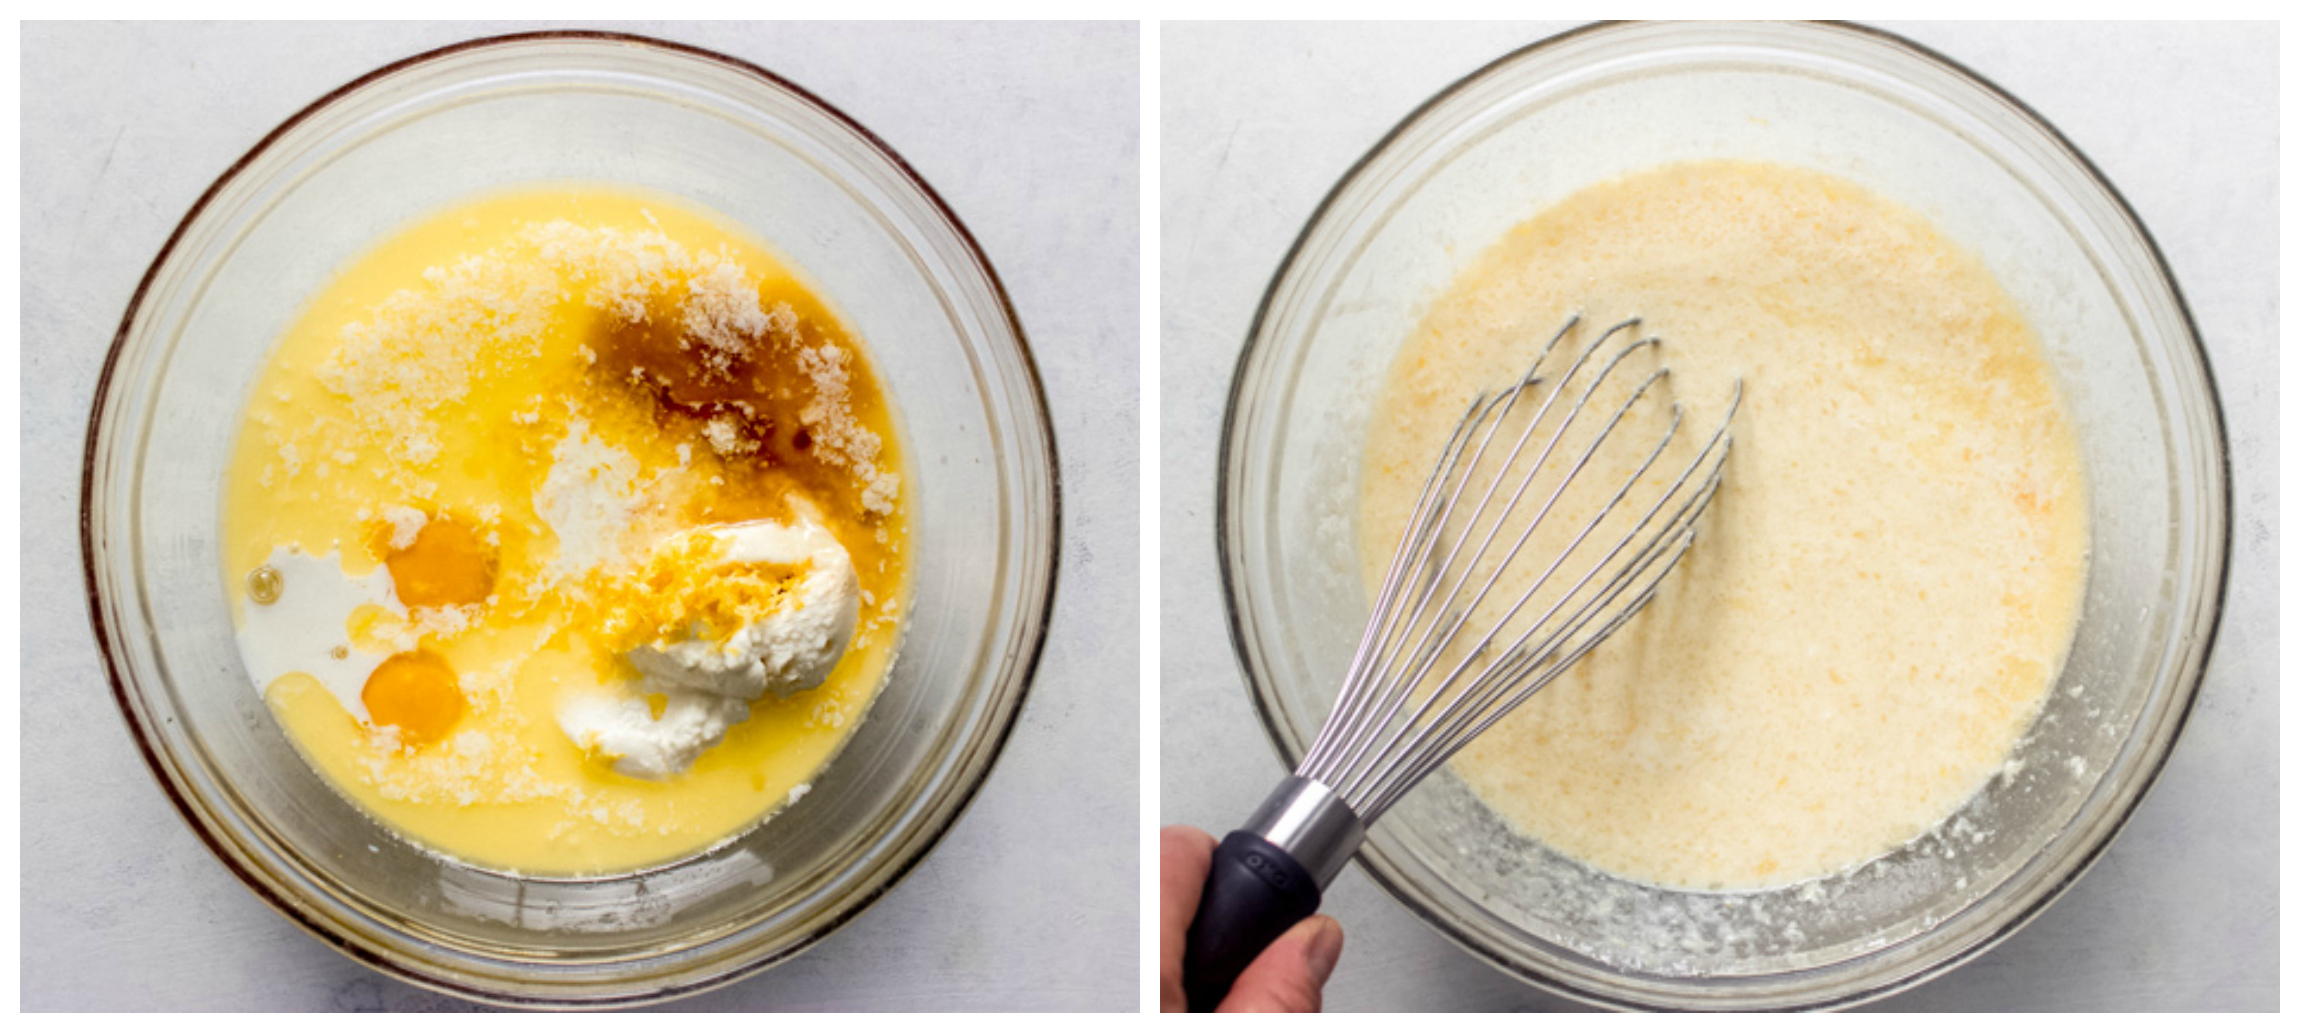 wet ingredients for ricotta pancakes